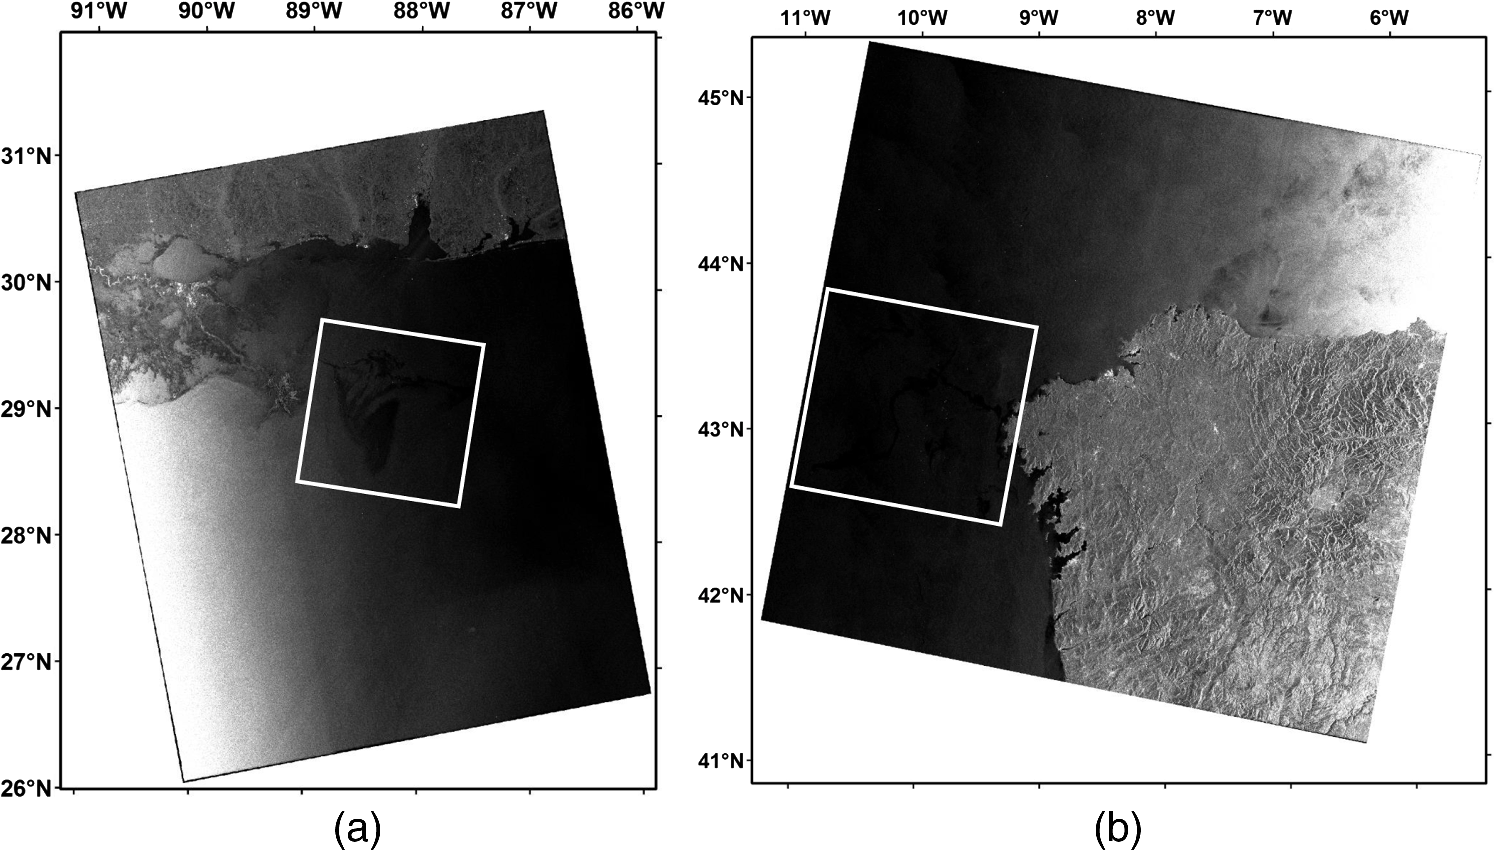 Dark Spot Segmentation For Oil Spill Detection Based On Multifeature Statics Ebook Shear And Moment Diagrams I Fig 1